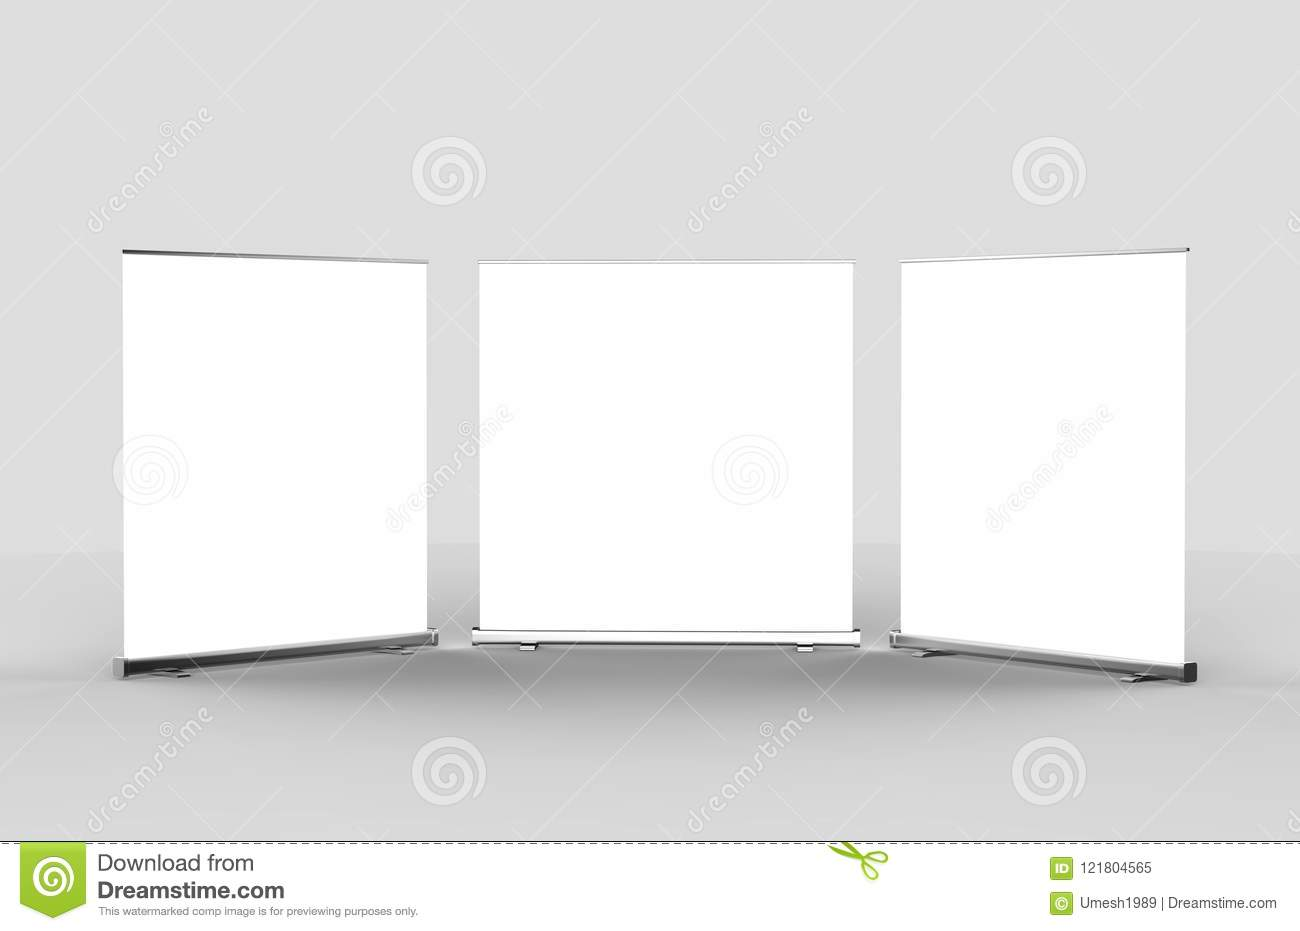 White blank empty high resolution business roll up and standee white blank empty high resolution business roll up and standee banner display mock up template for your design presentation flashek Image collections